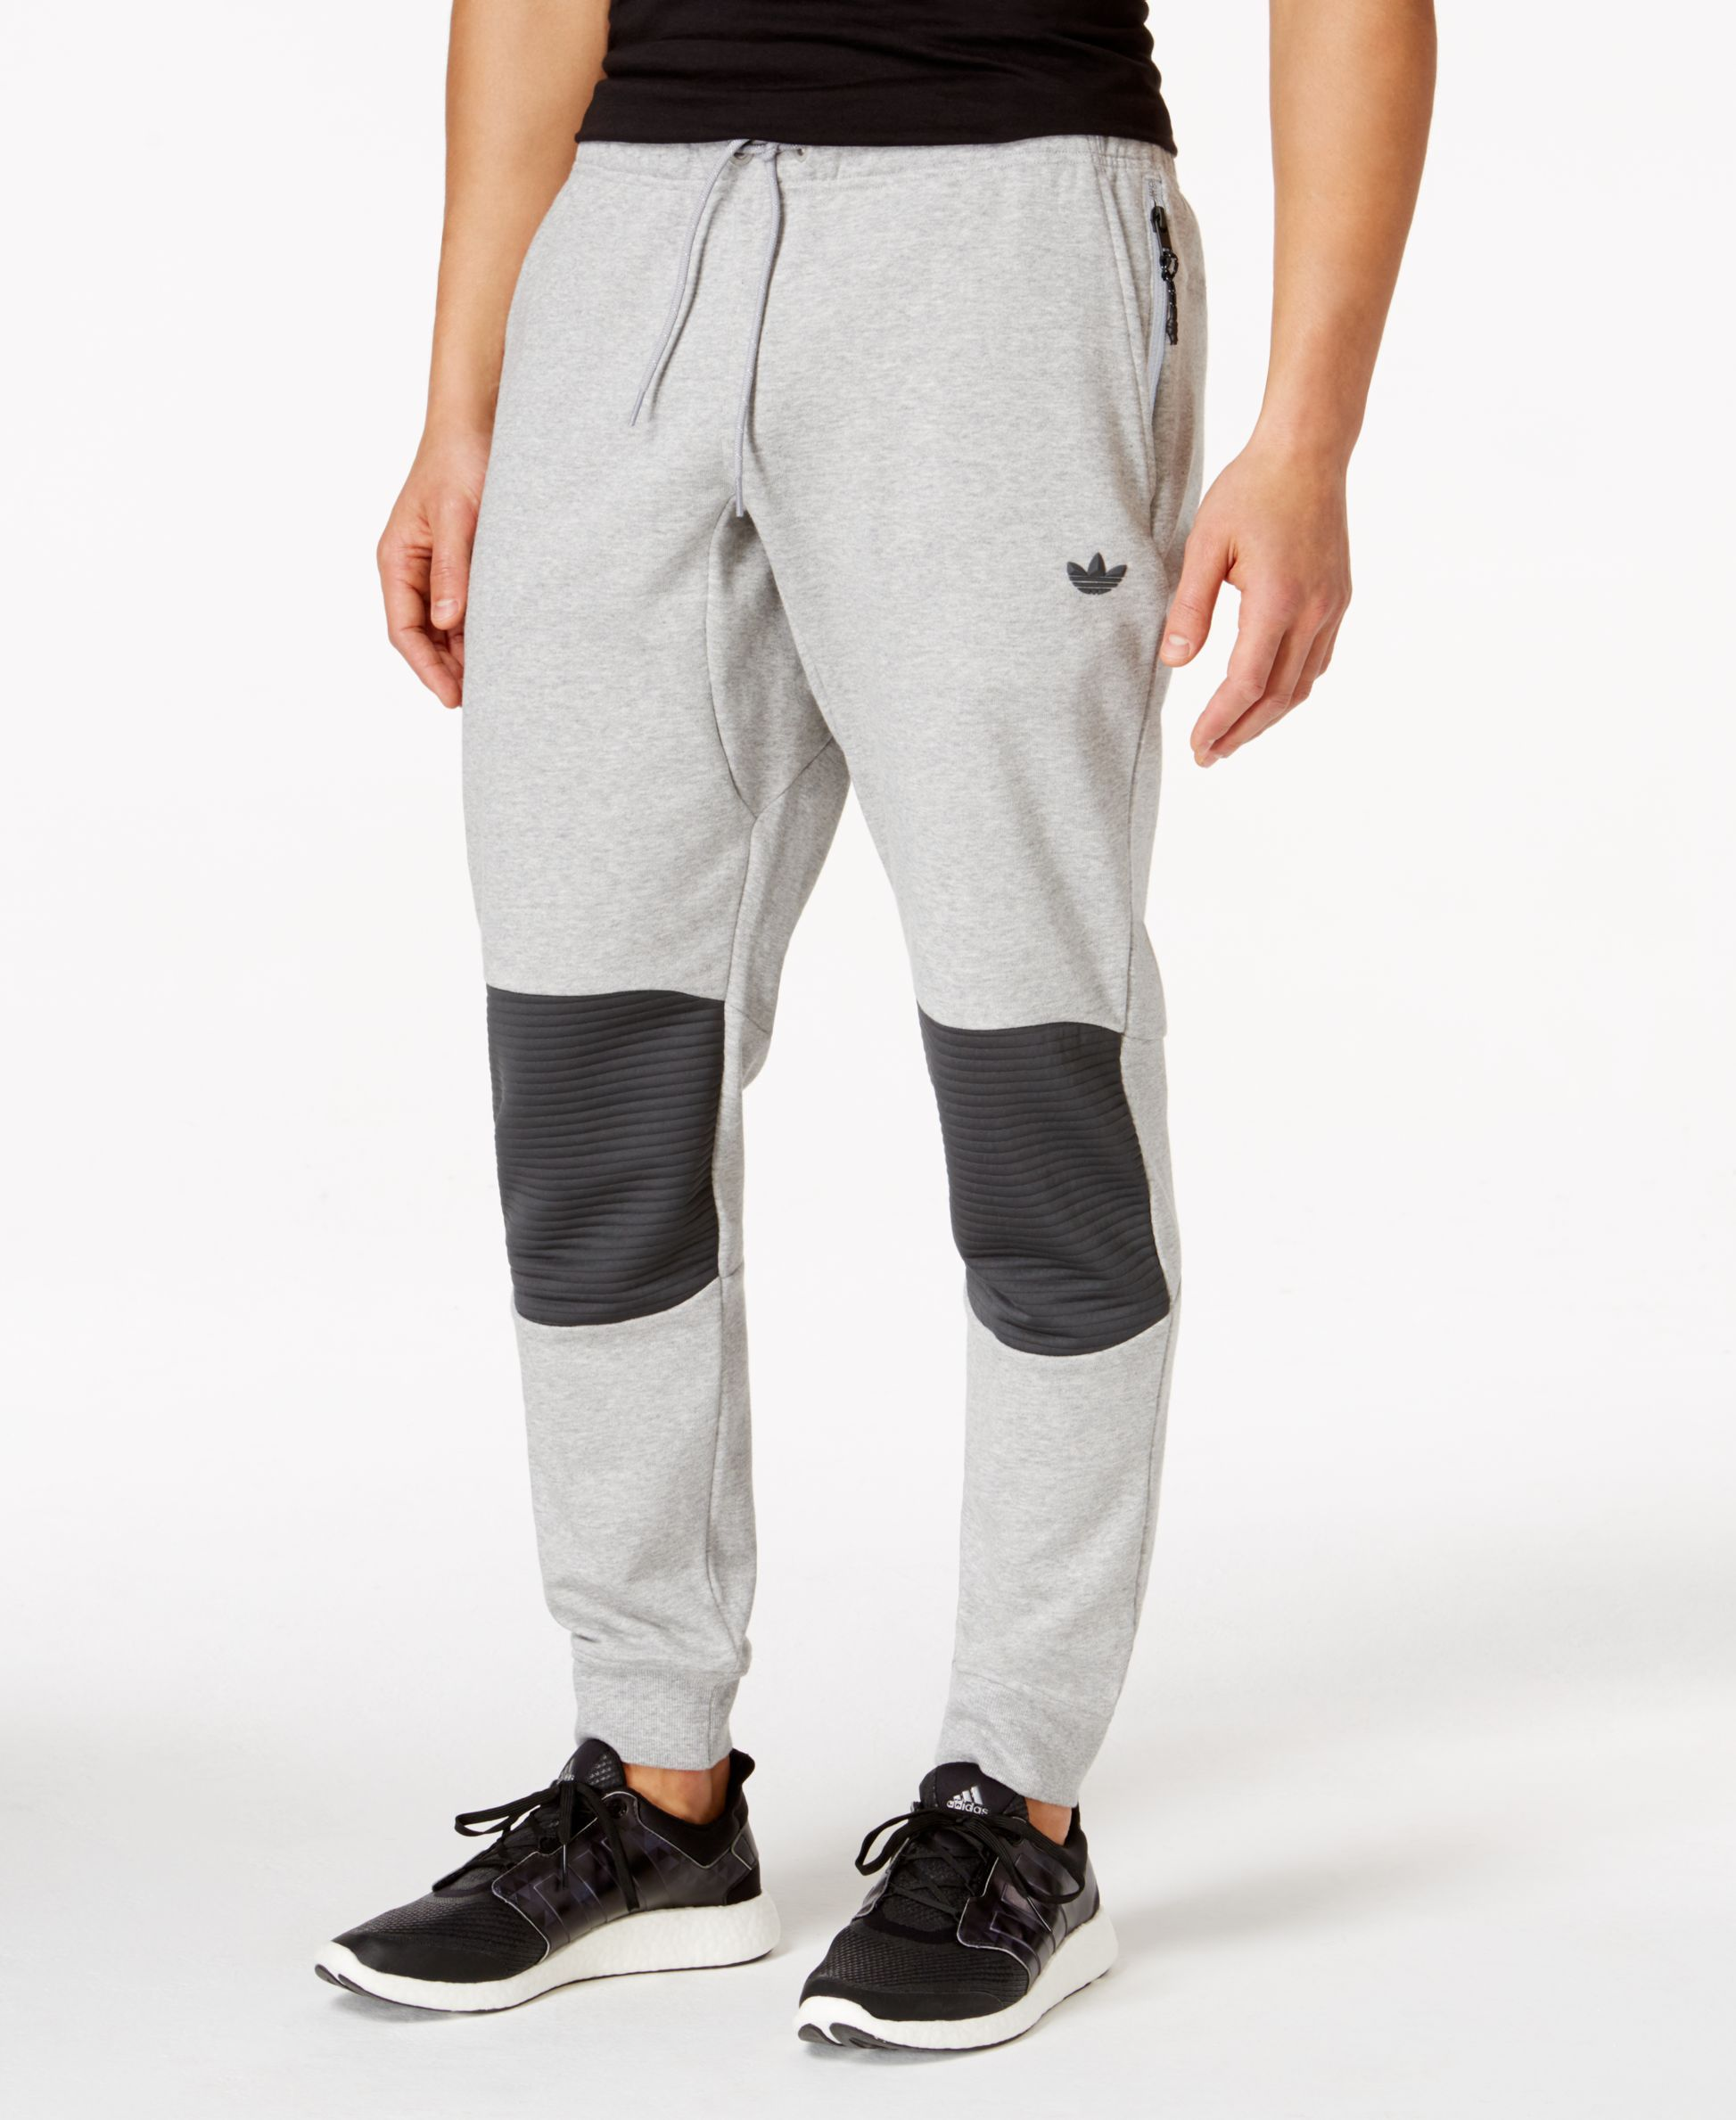 8e27bff6b adidas Sports Luxe Moto Pants Moto Pants, Sports Luxe, Adidas Originals, Mens  Joggers